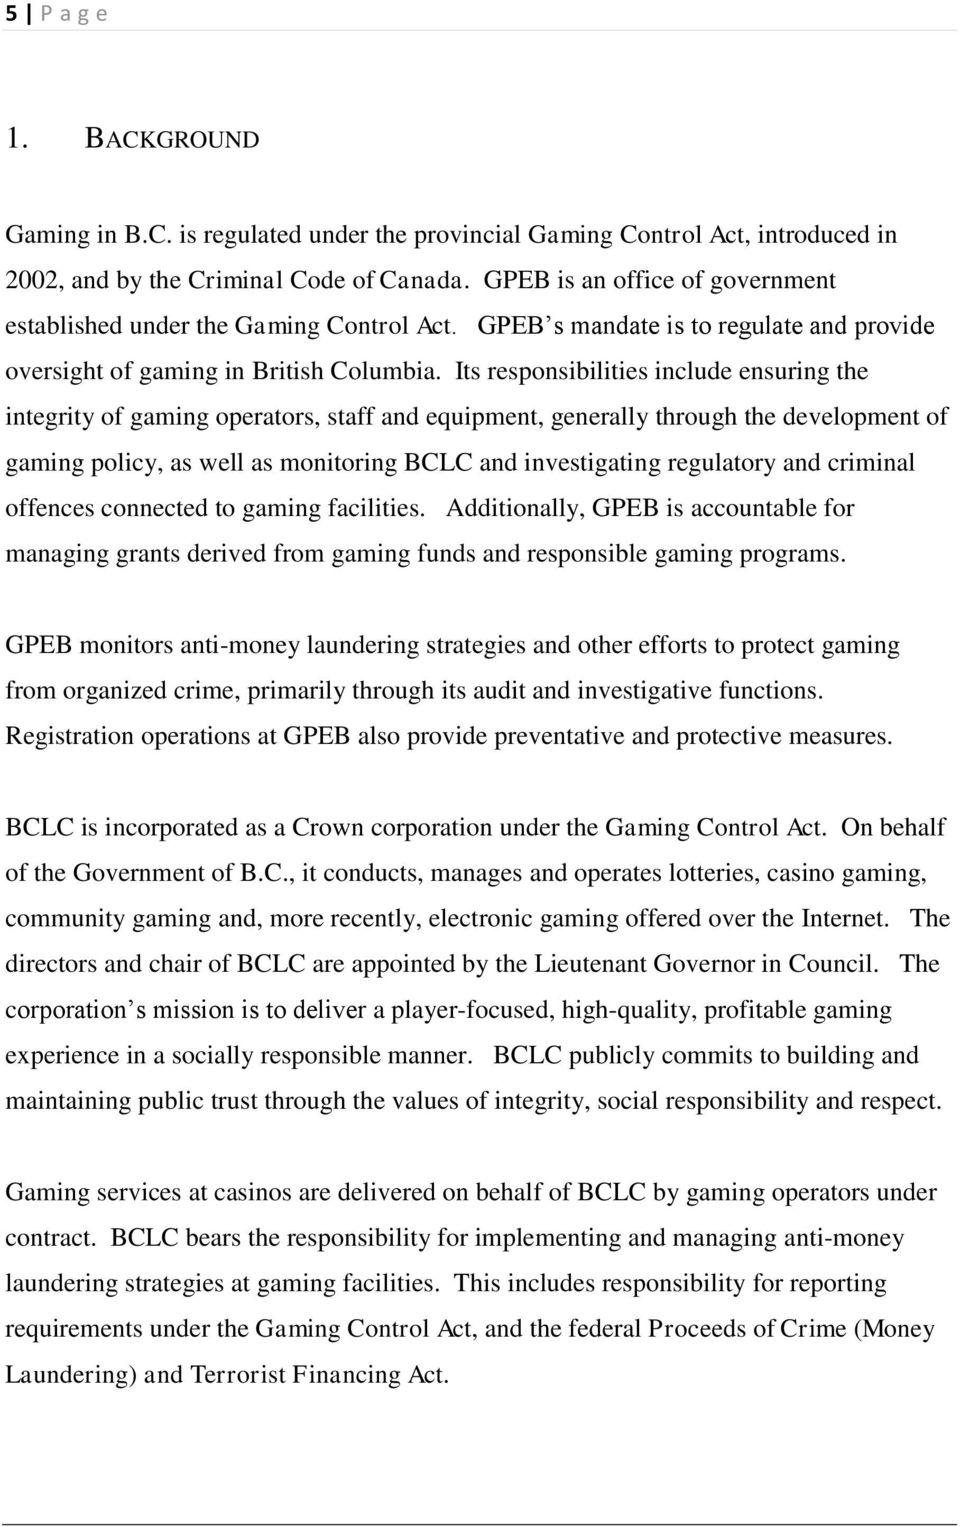 Its responsibilities include ensuring the integrity of gaming operators, staff and equipment, generally through the development of gaming policy, as well as monitoring BCLC and investigating